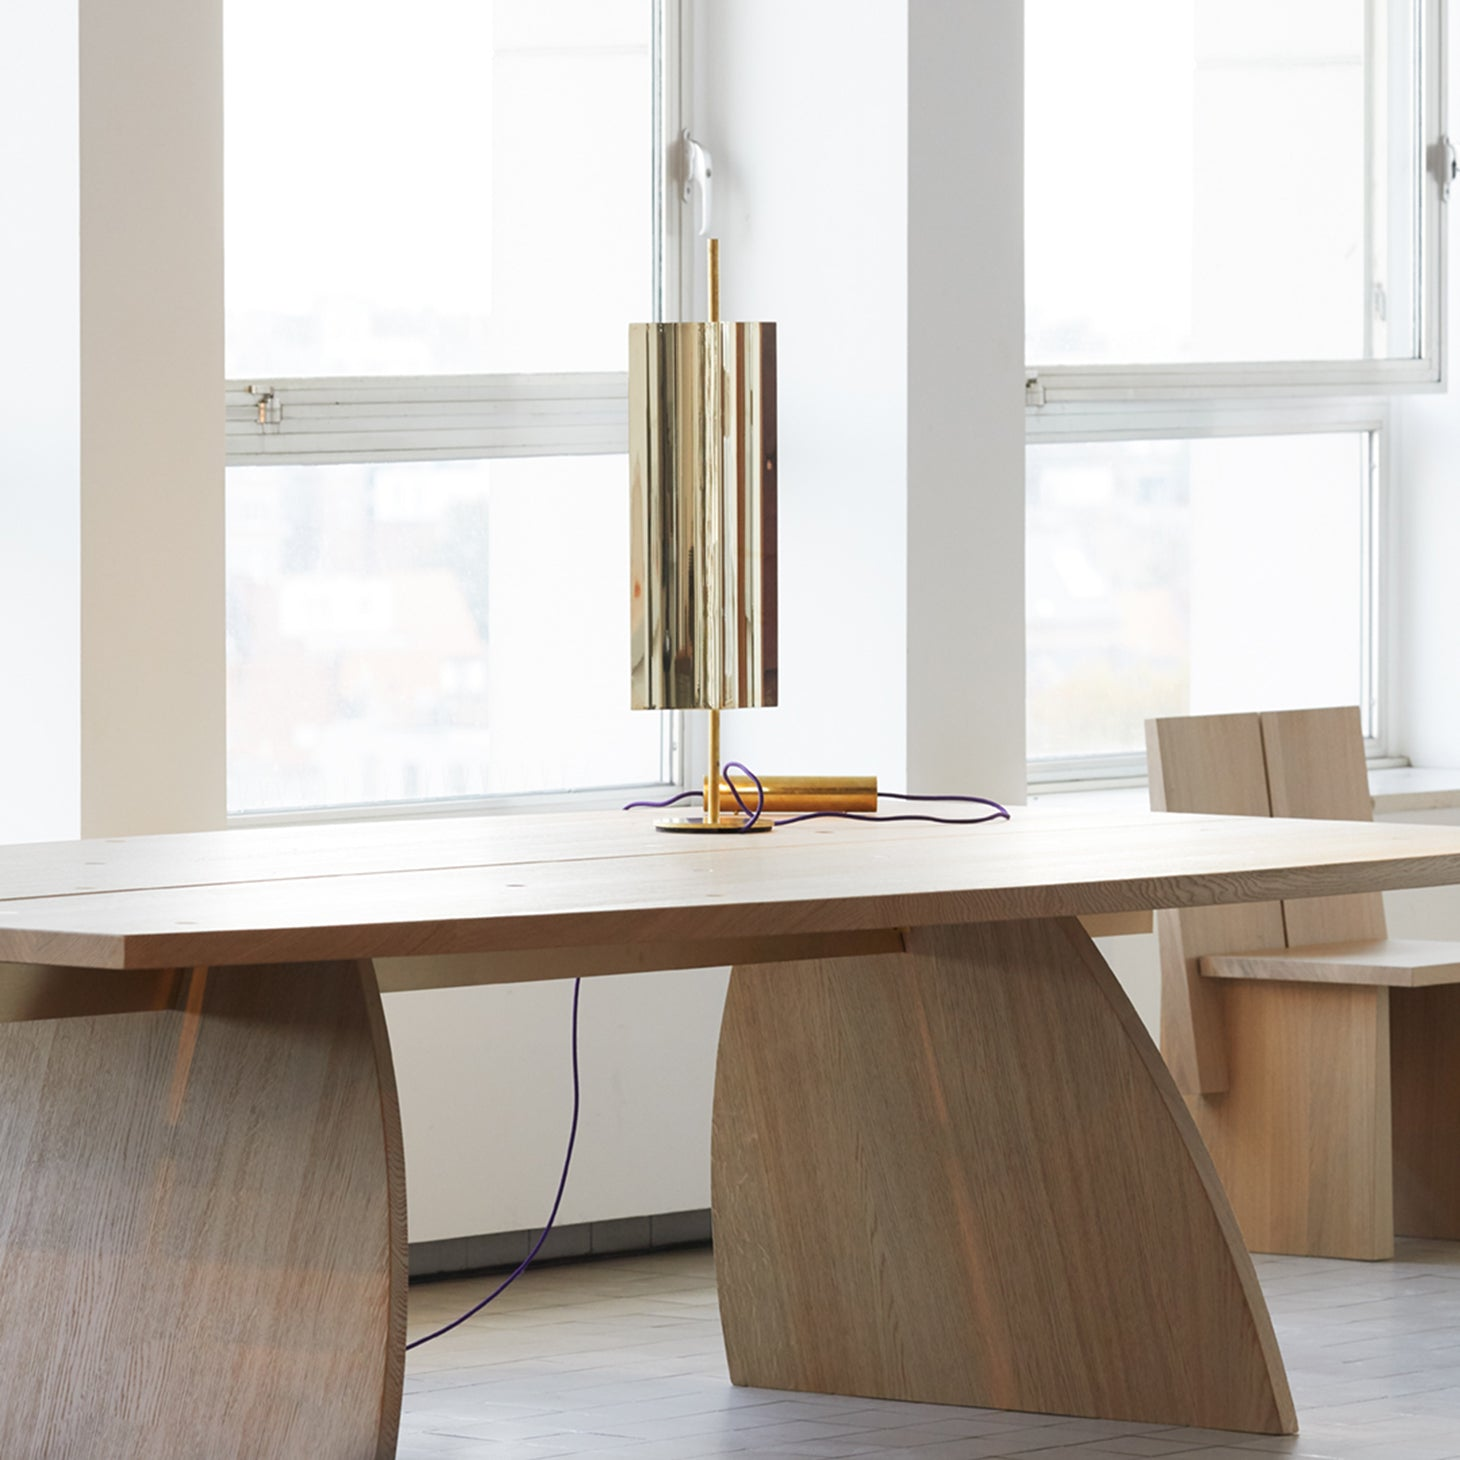 T Elements T Table Dining Tables By Andrea Tognon Avenue Road